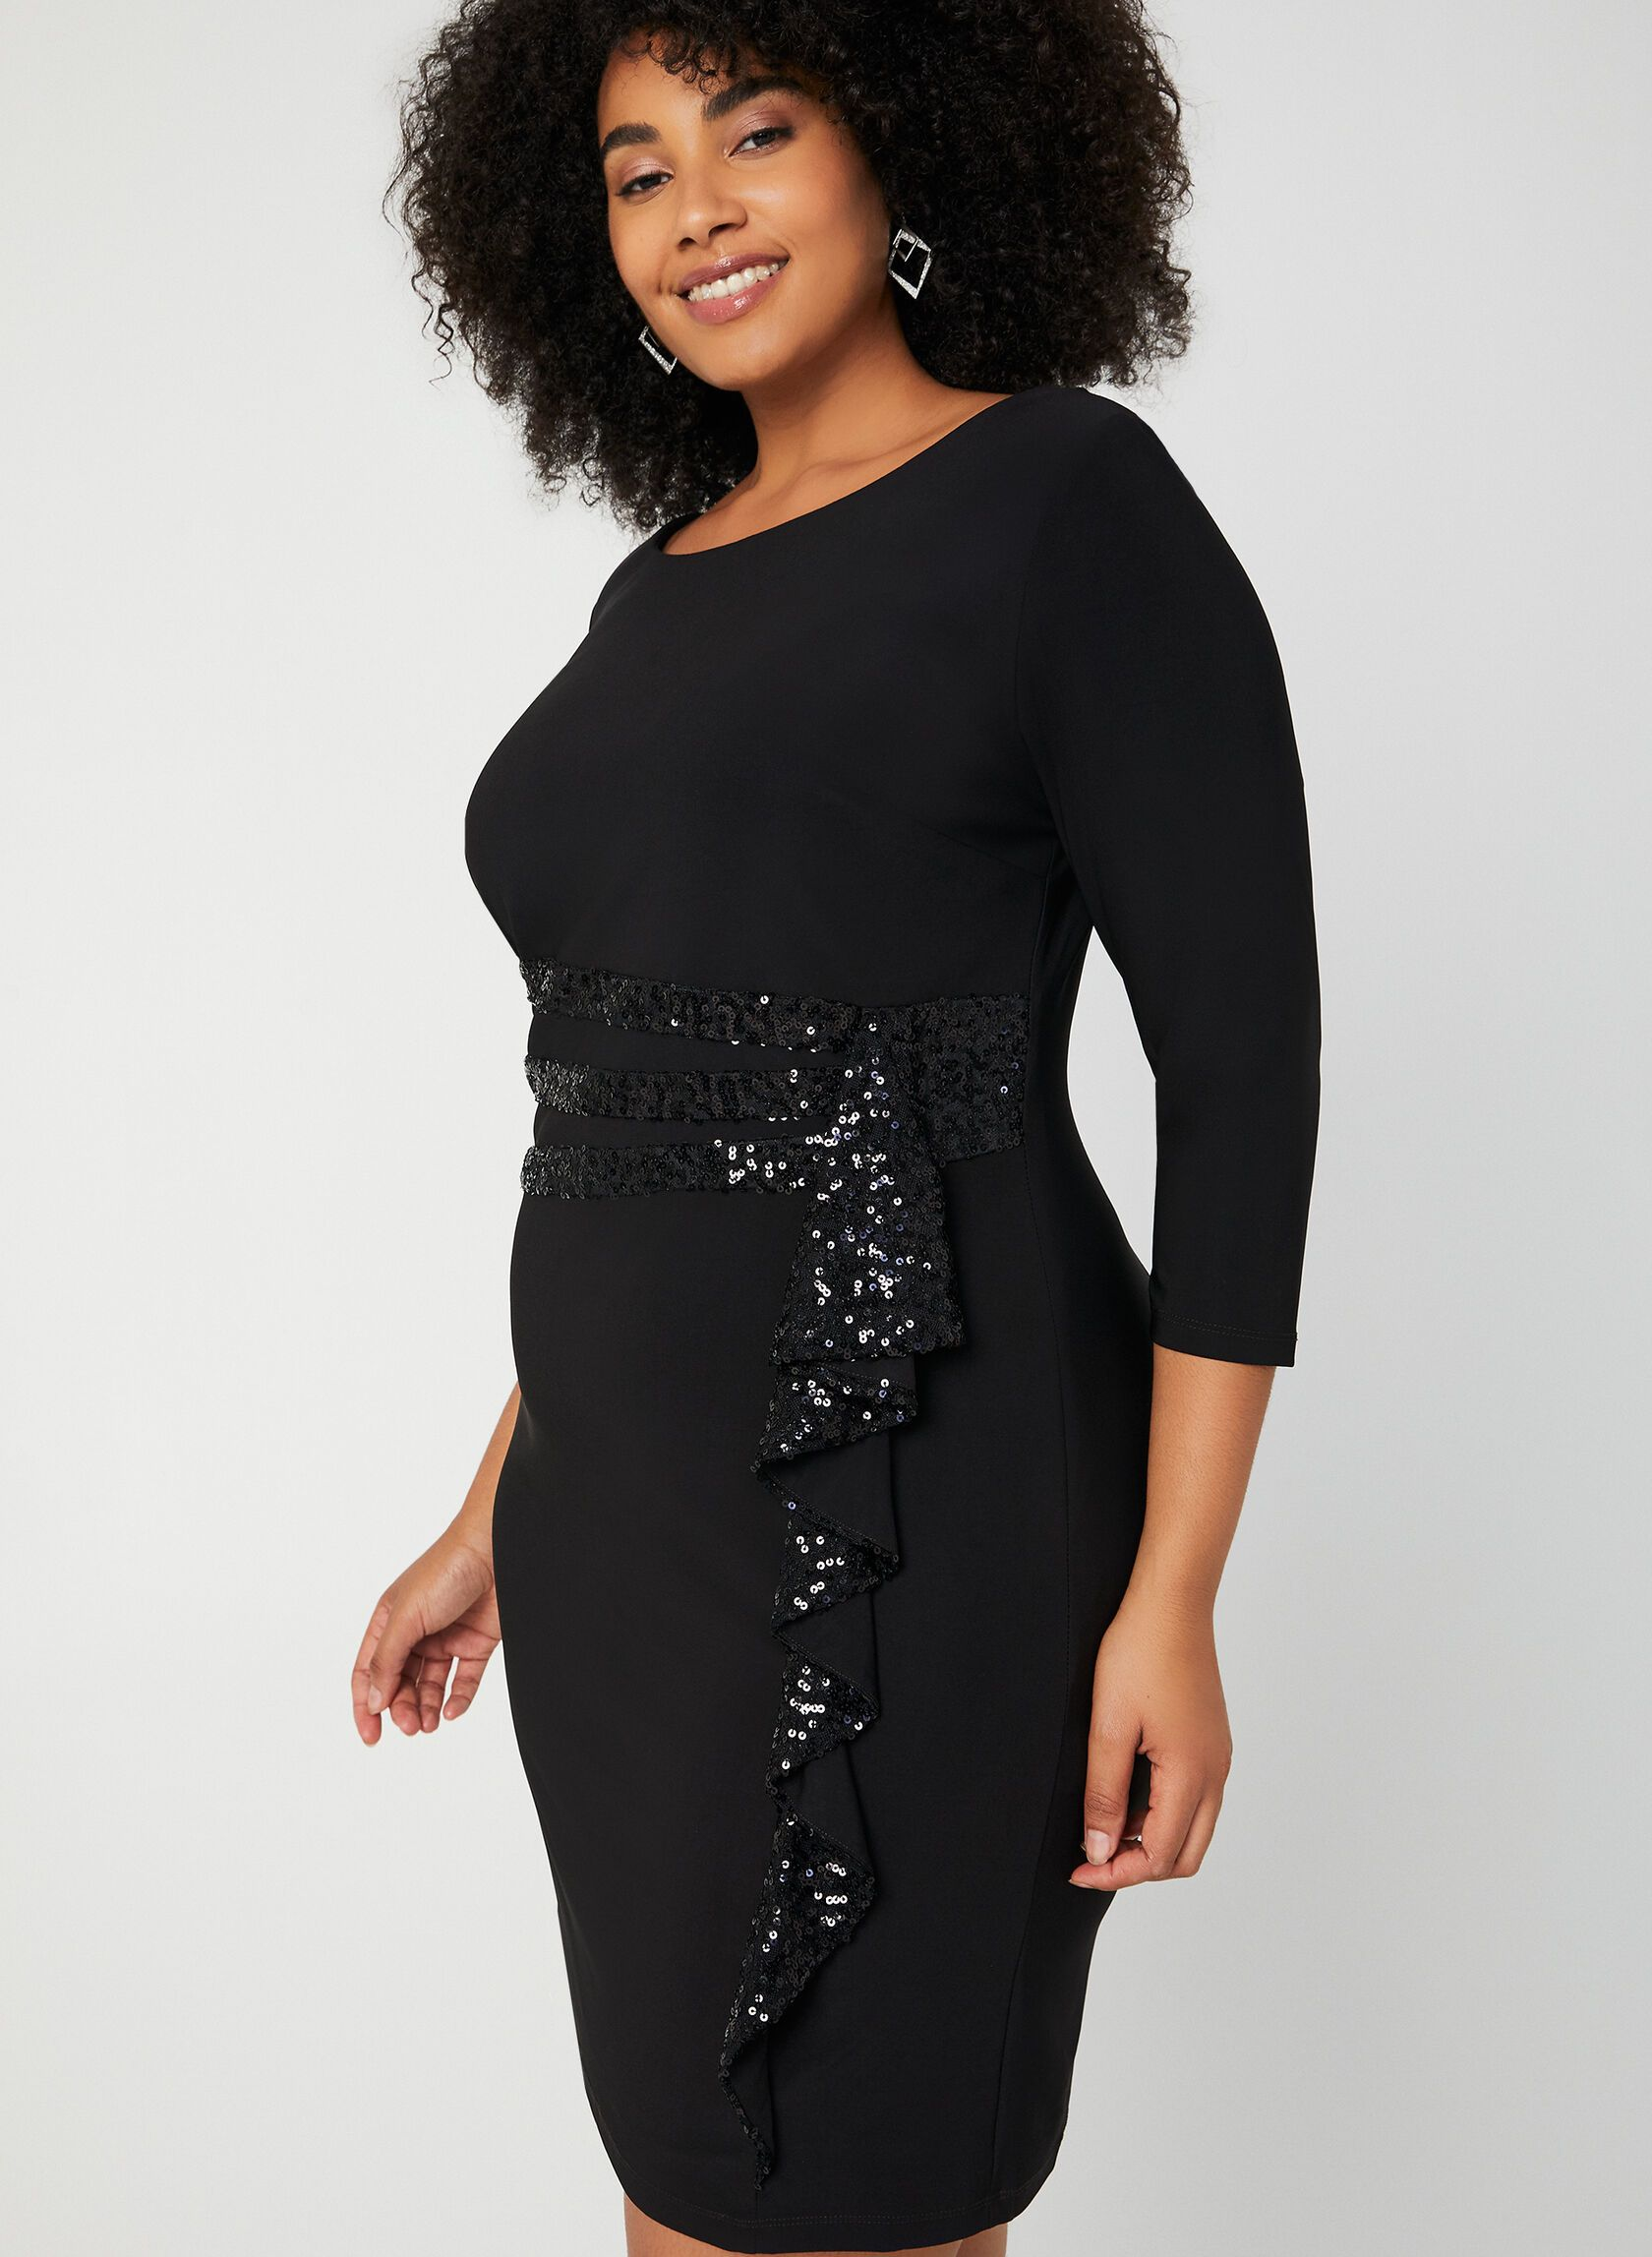 sparkly cocktail dress long sleeve